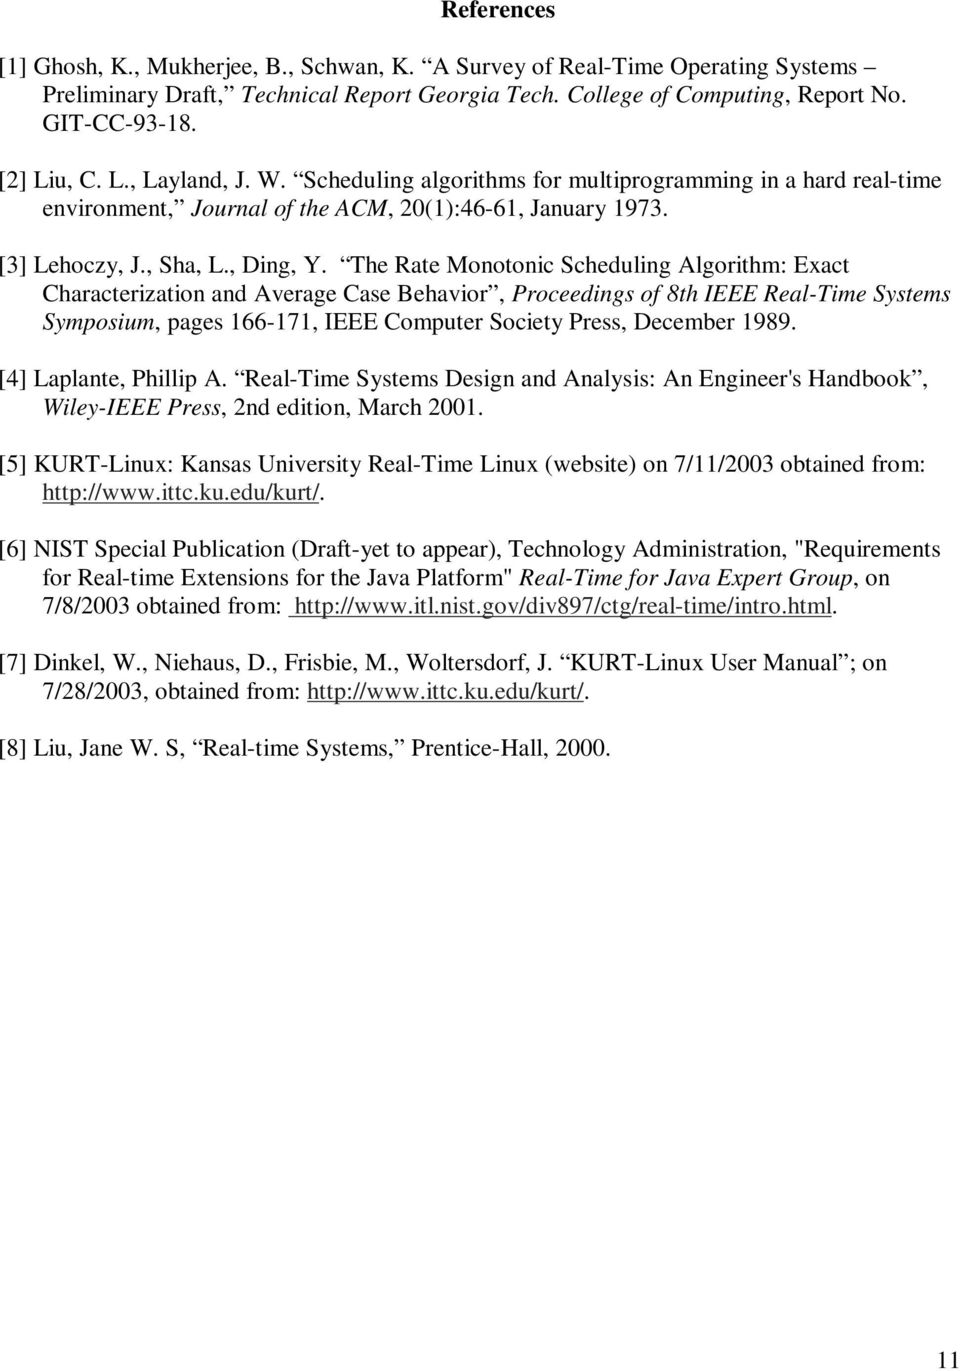 The Rate Monotonic Scheduling Algorithm: Exact Characterization and Average Case Behavior, Proceedings of 8th IEEE Real-Time Systems Symposium, pages 166-171, IEEE Computer Society Press, December